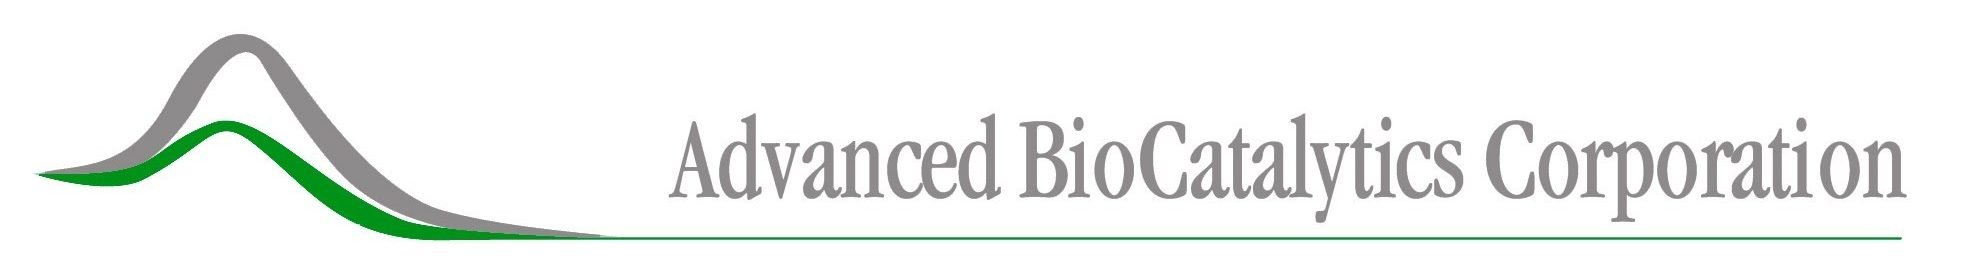 advanced biocatalytics corporation